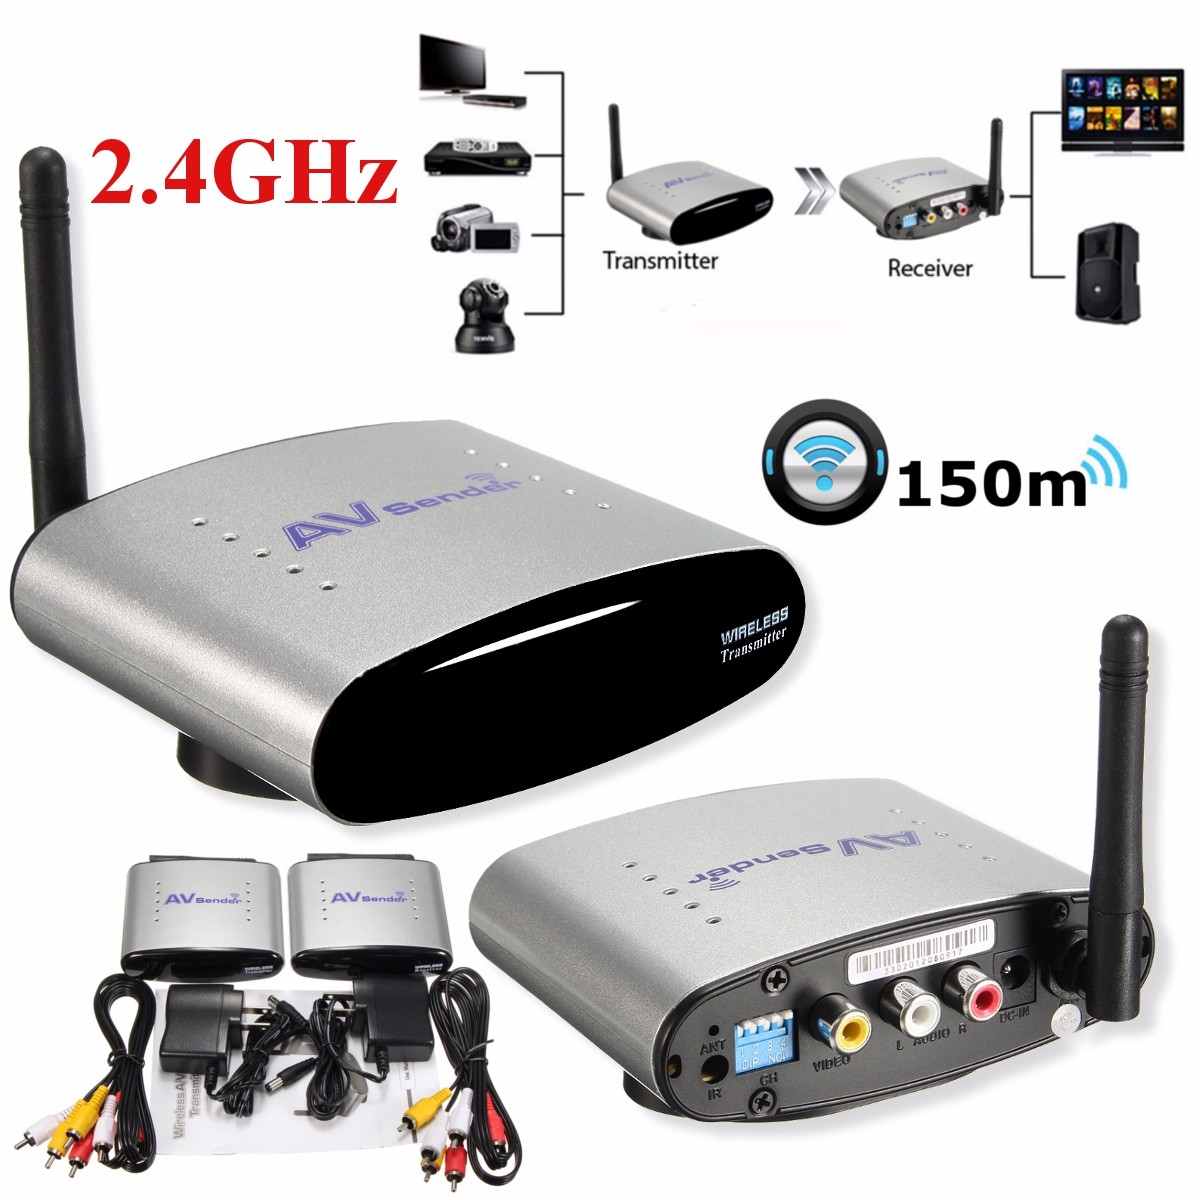 2 4ghz 150m wireless av sender stb tv audio video signal transmitter receiver ebay. Black Bedroom Furniture Sets. Home Design Ideas